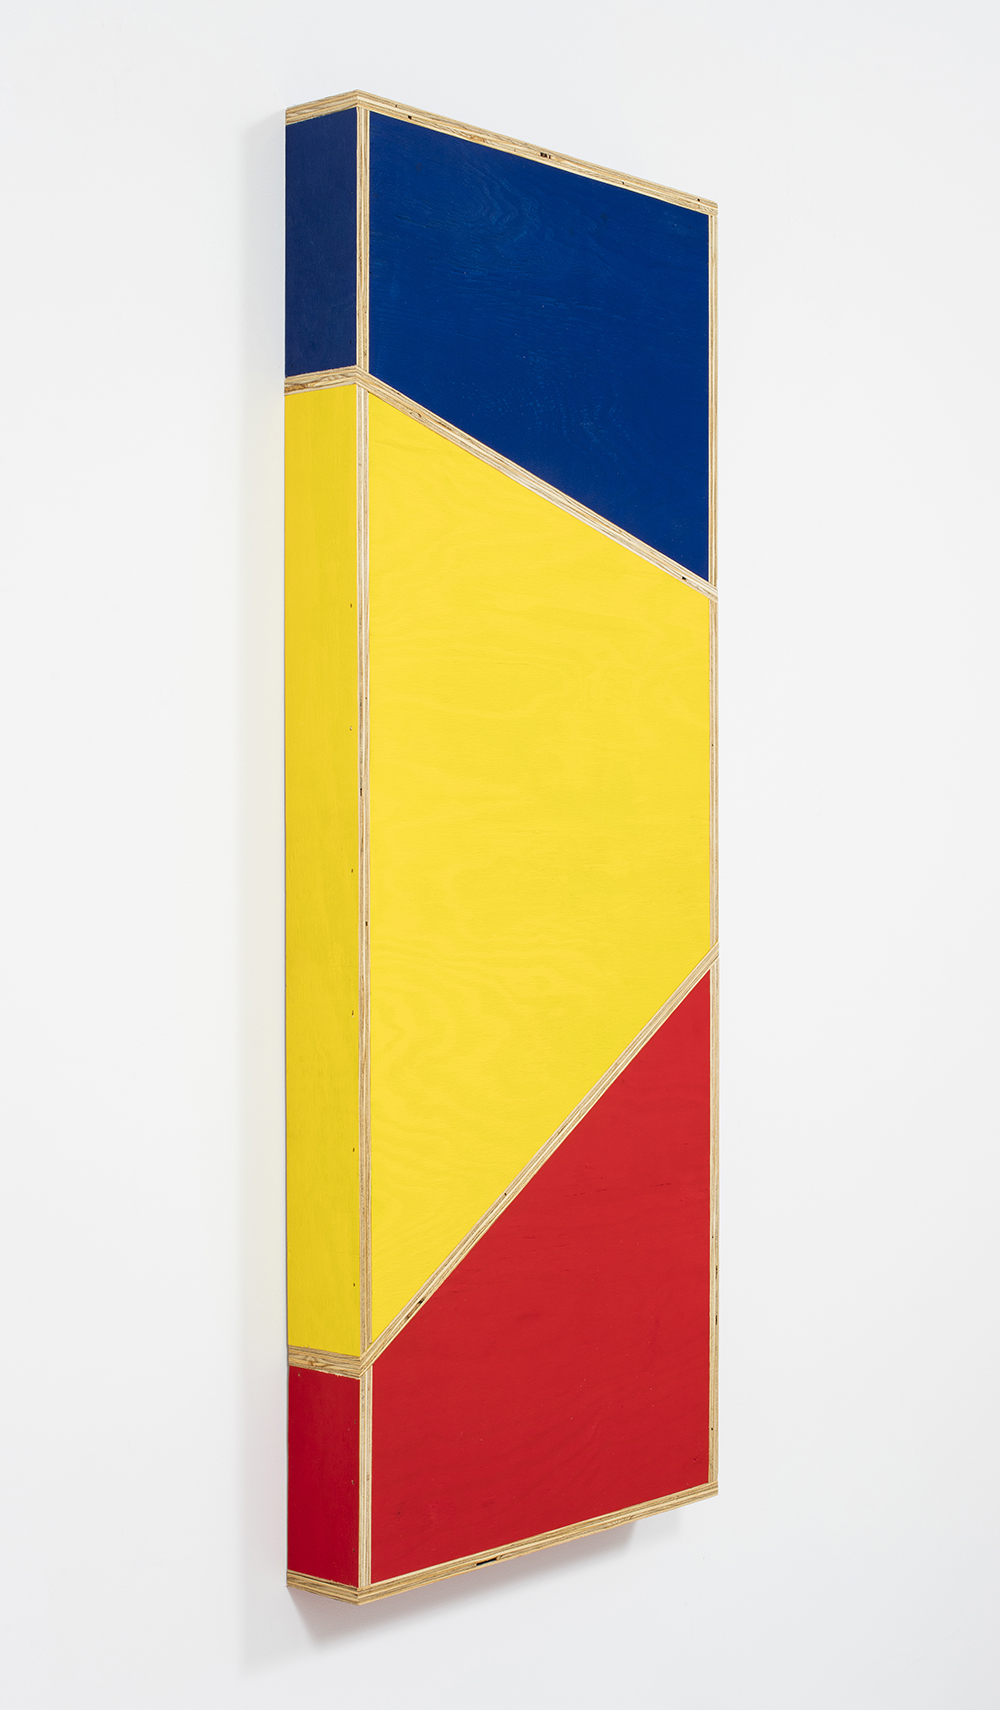 G.T. Pellizzi. <em>Transitional Geometry in Red, Yellow and Blue (Figure 33)</em>, 2016. Eggshell acrylic on plywood, 60 x 24 inches